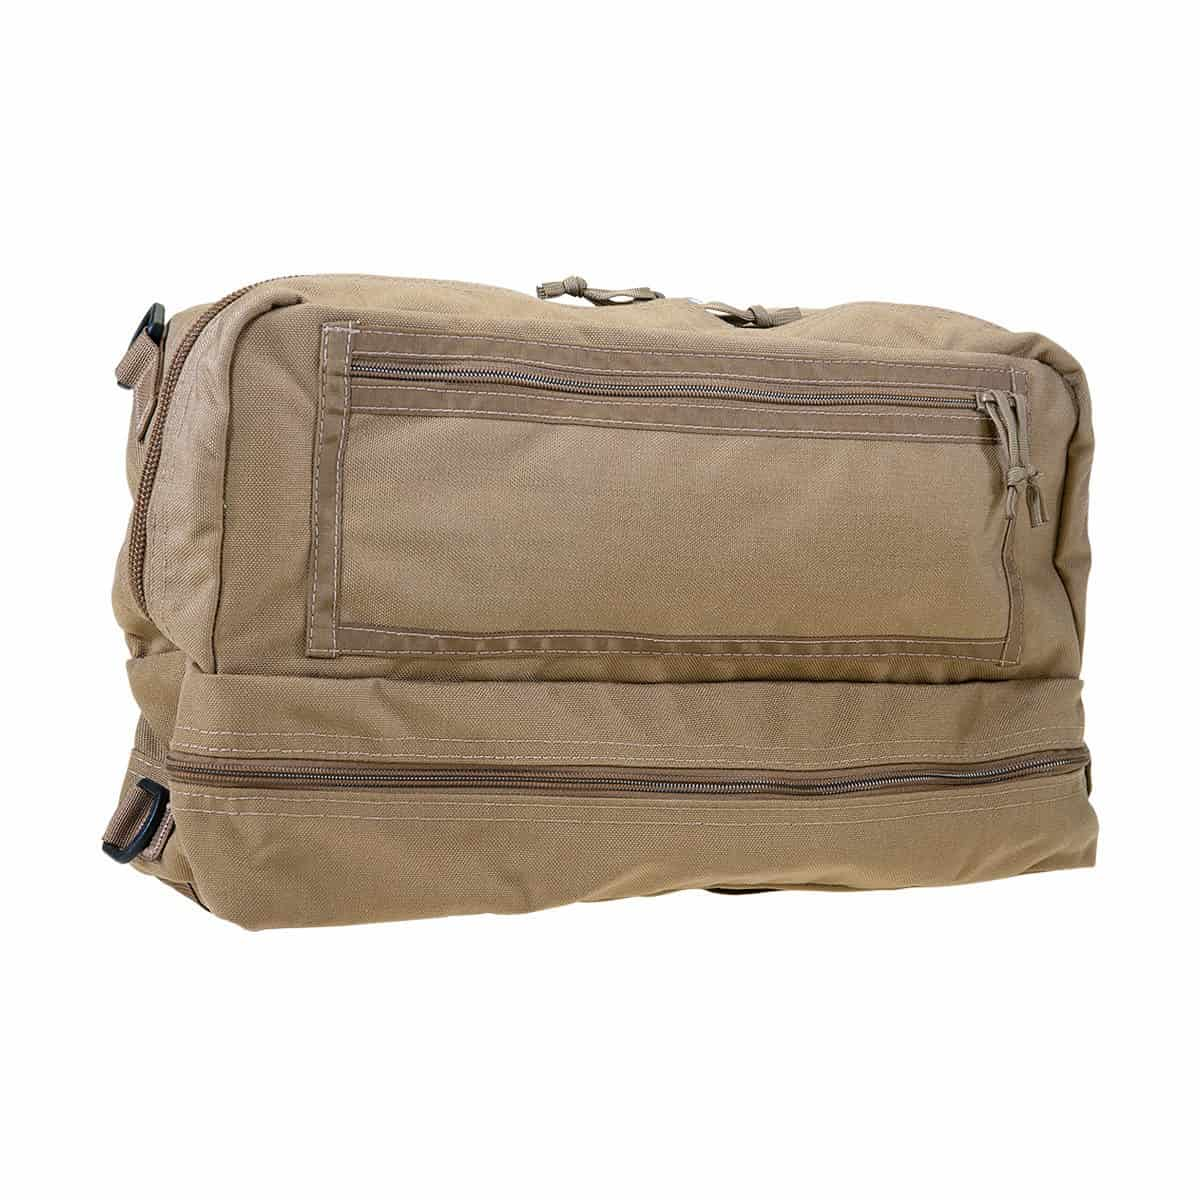 mojo combat life saver bag closed front right coyote brown